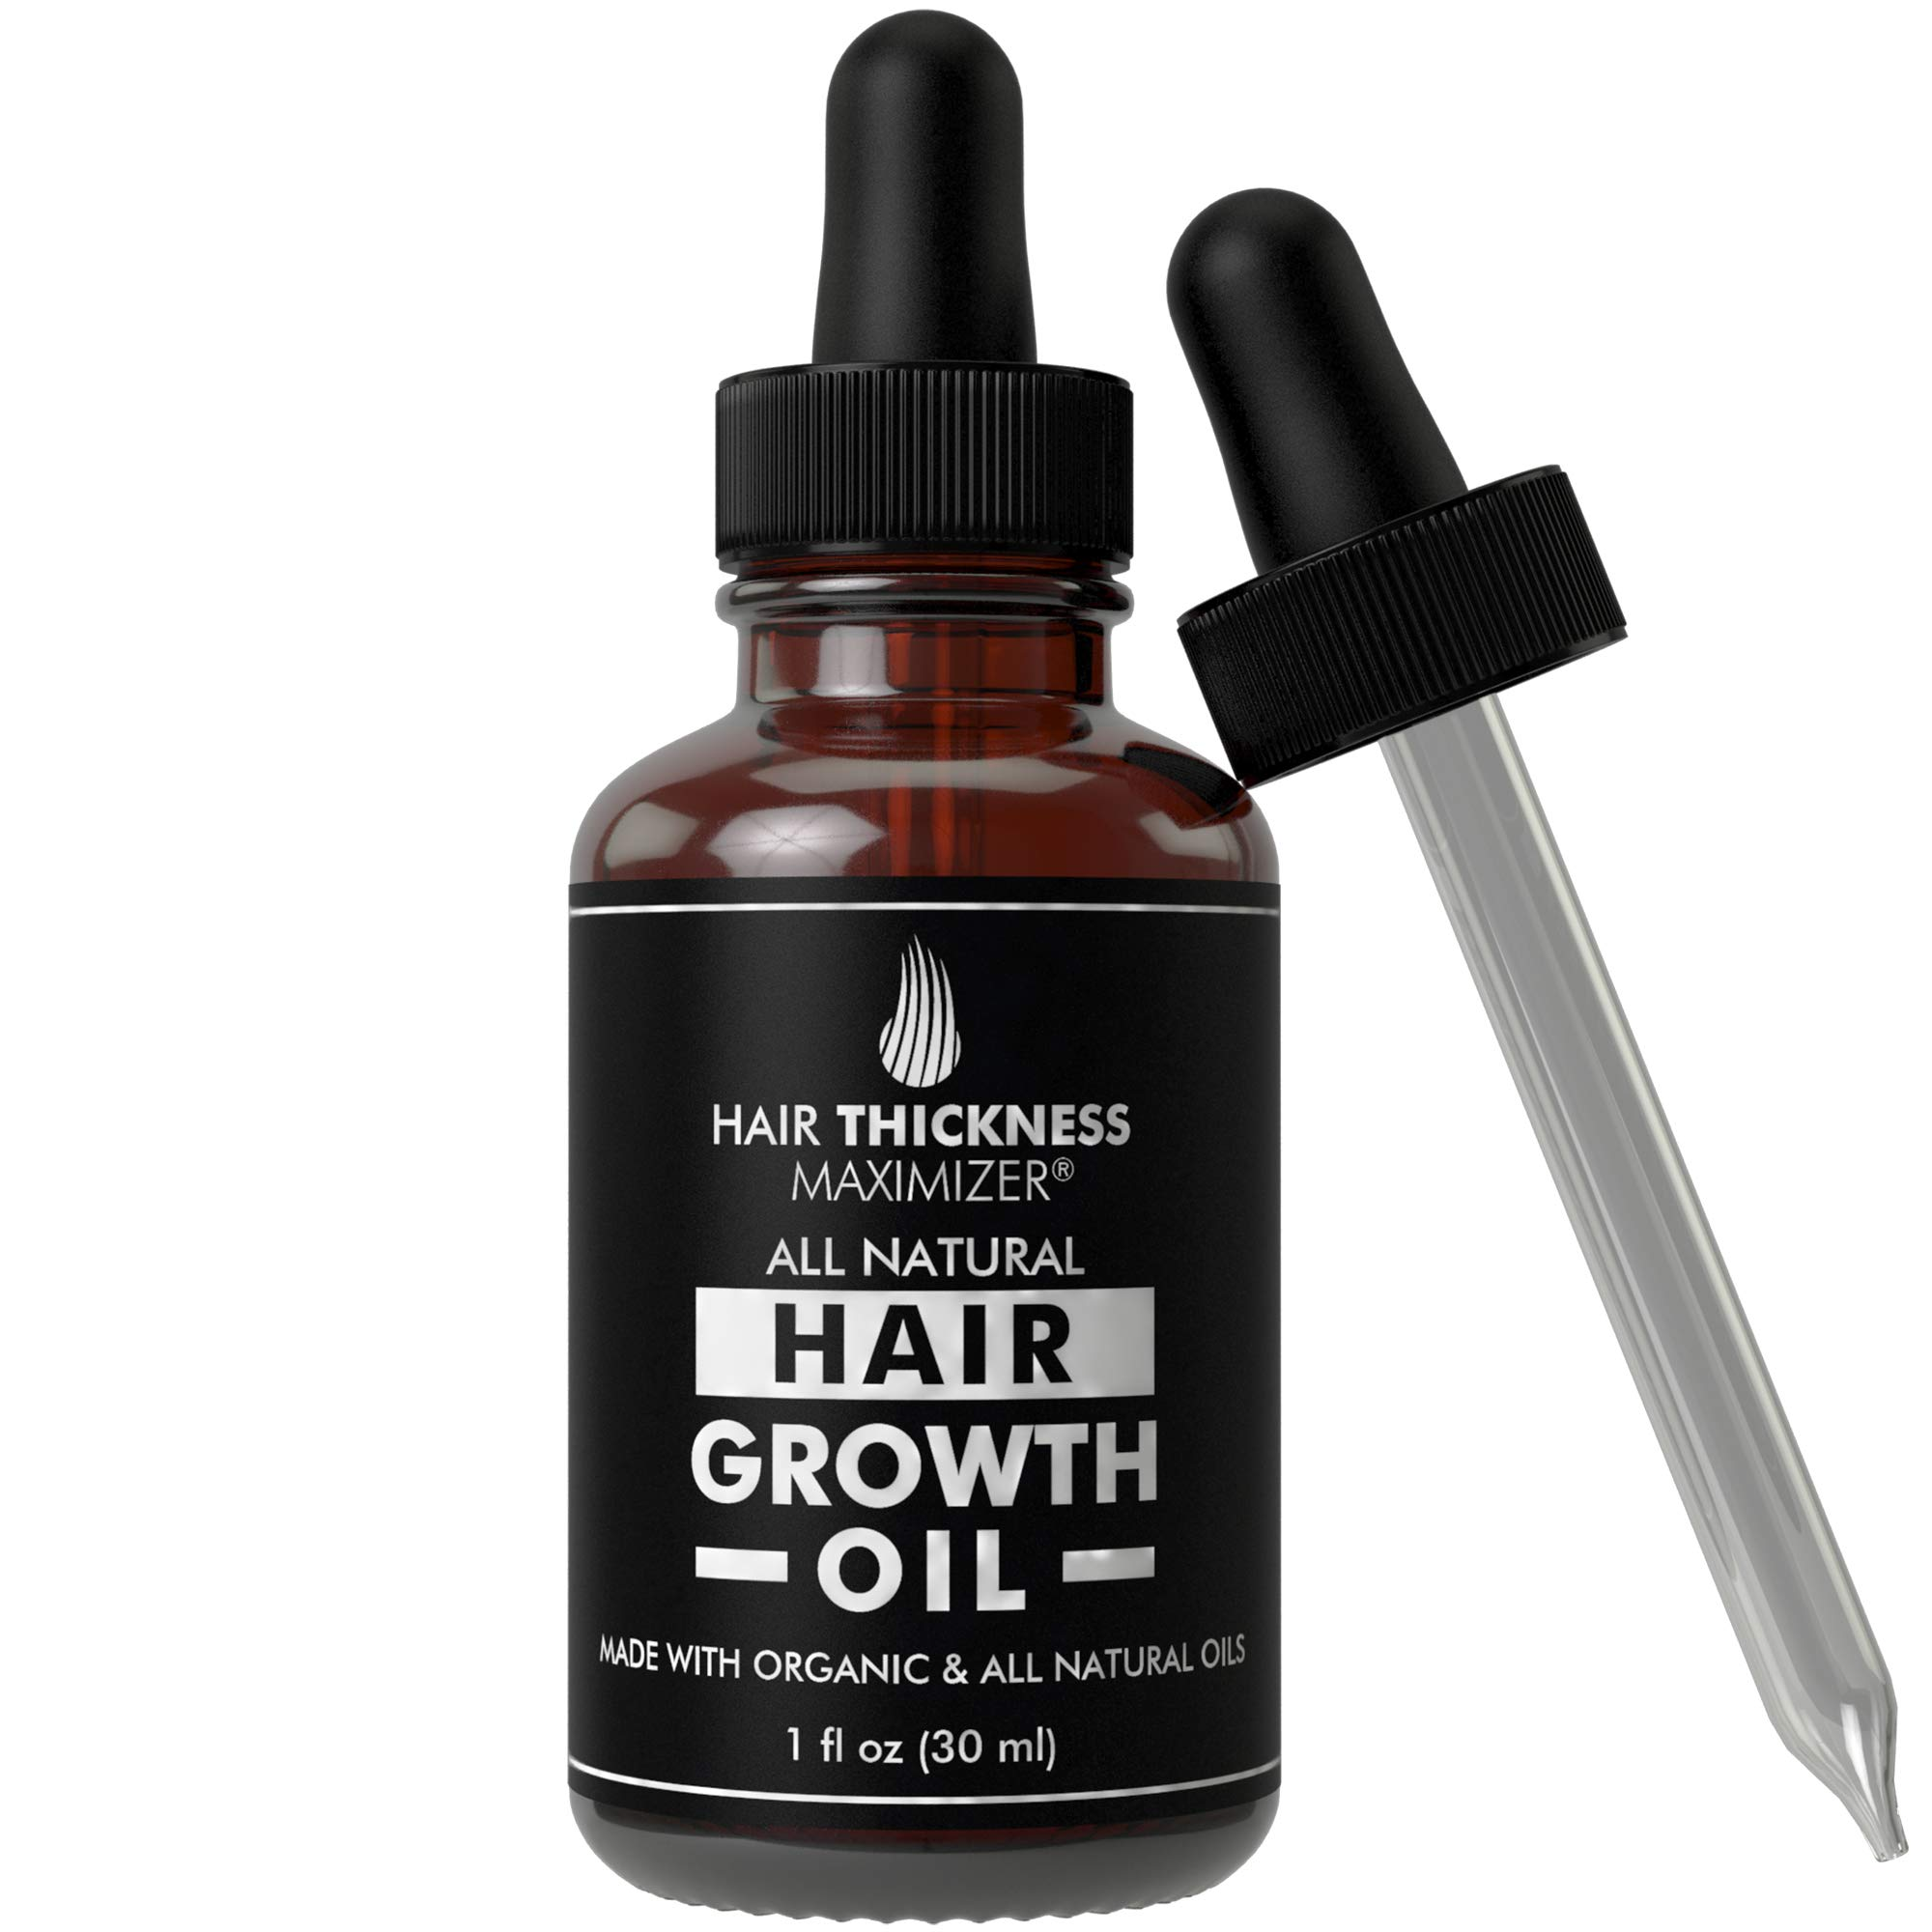 Best Organic Hair Growth Oils Guaranteed. Stop Hair Loss Now by Hair Thickness Maximizer. Best Treatment for Hair Thinning. Hair Thickening Serum with Organic Wild Black Castor Oil, Jojoba, Argan Oil by Hair Thickness Maximizer